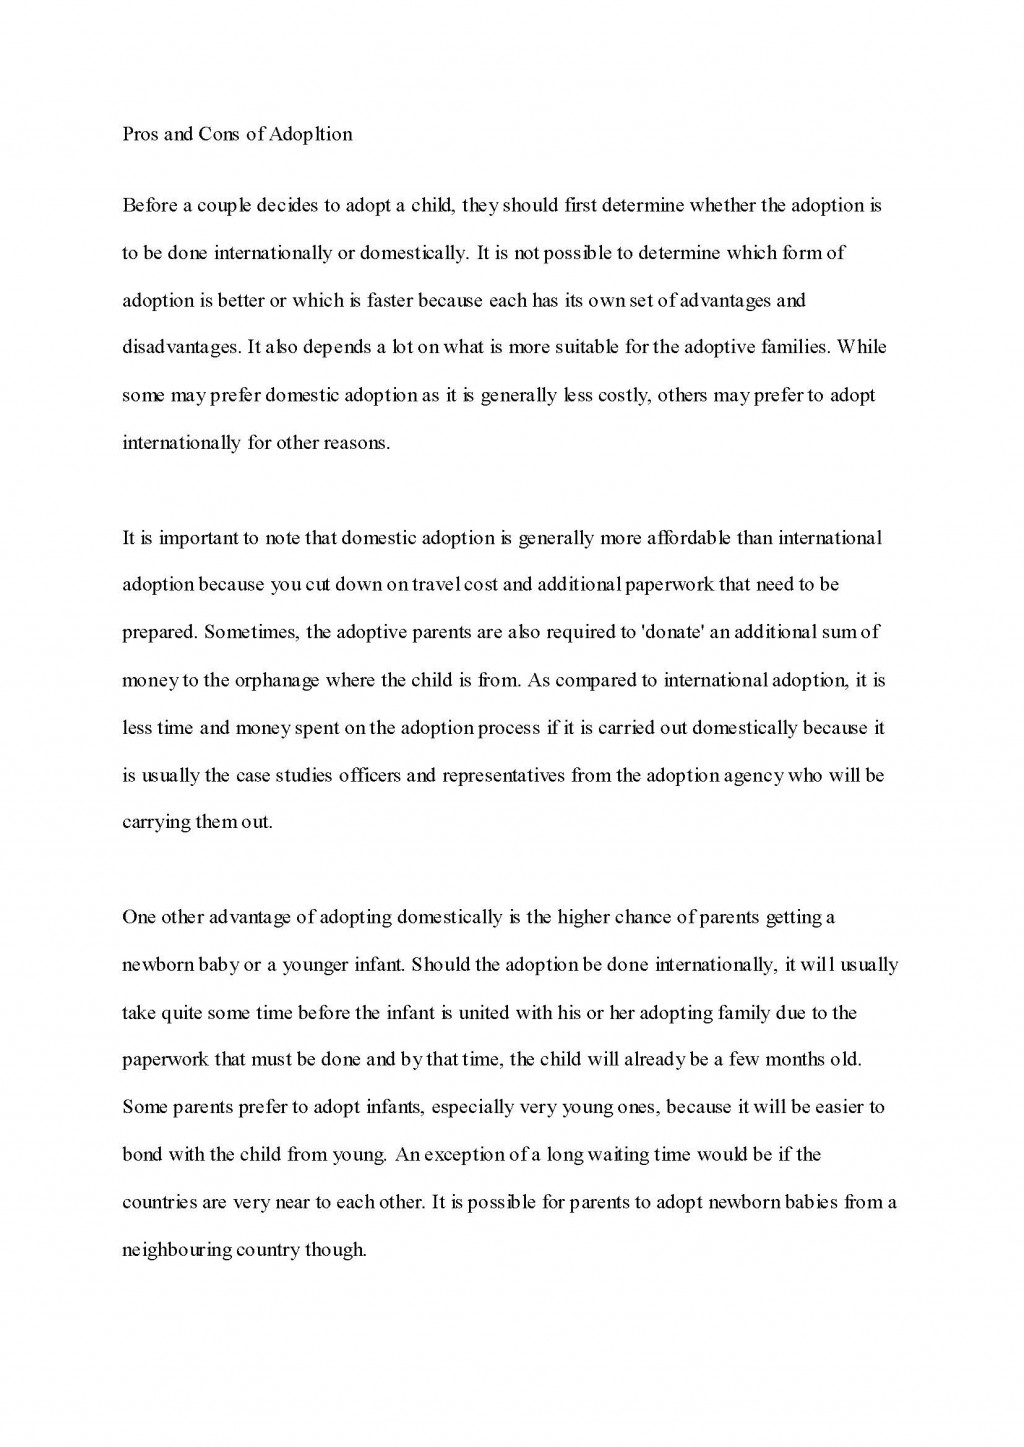 013 Process Essay Topics Adoption Sample Marvelous Examples High School For College Large